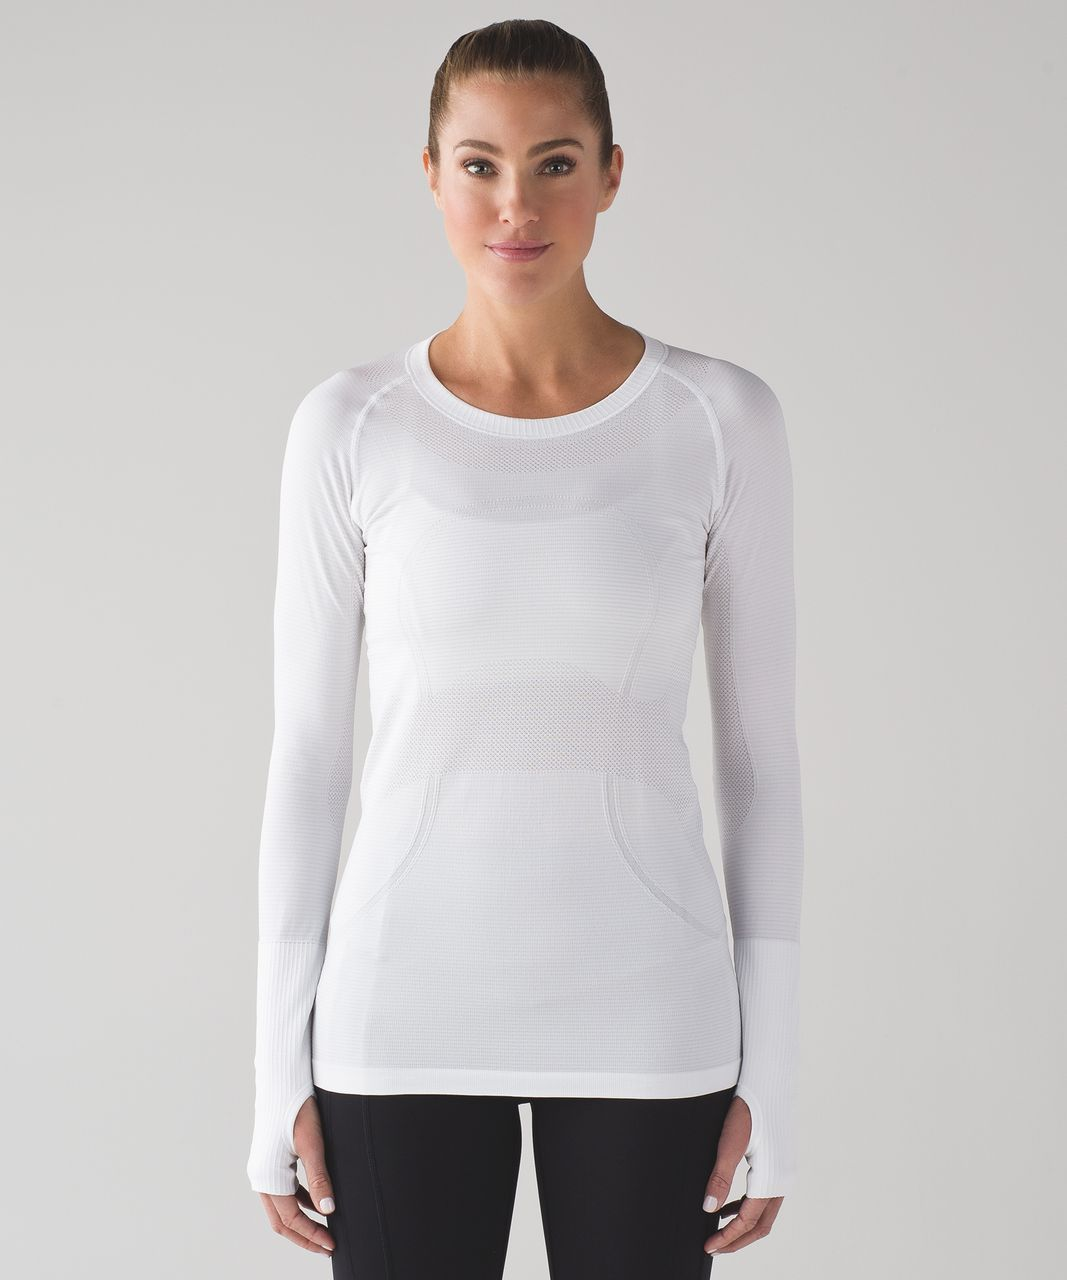 Lululemon Swiftly Tech Long Sleeve Crew - White / White